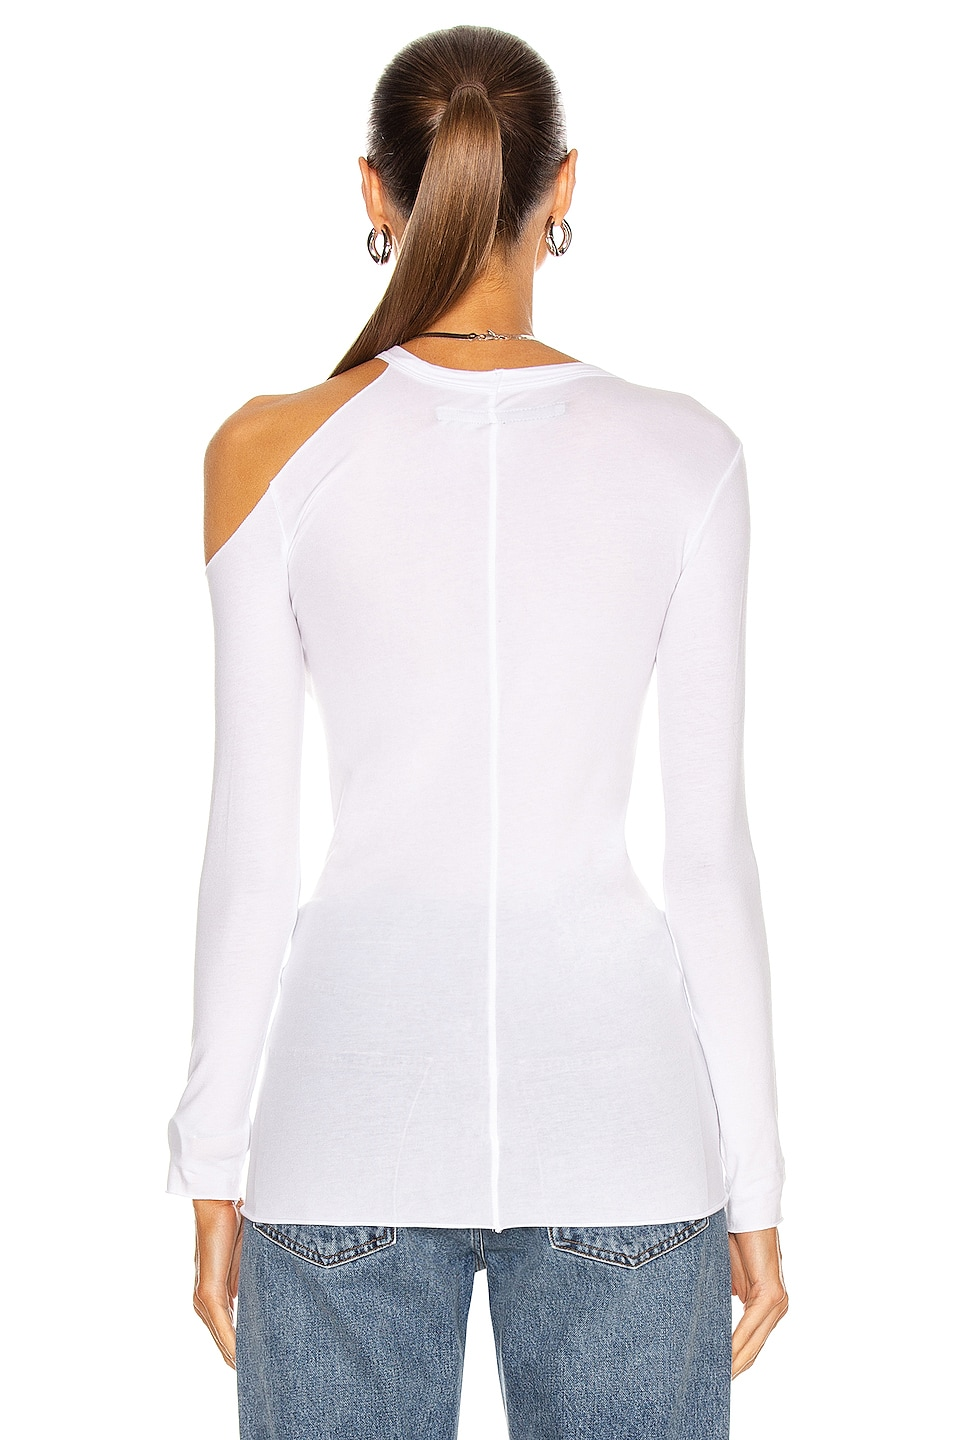 Image 4 of Enza Costa Exposed Shoulder Top in White